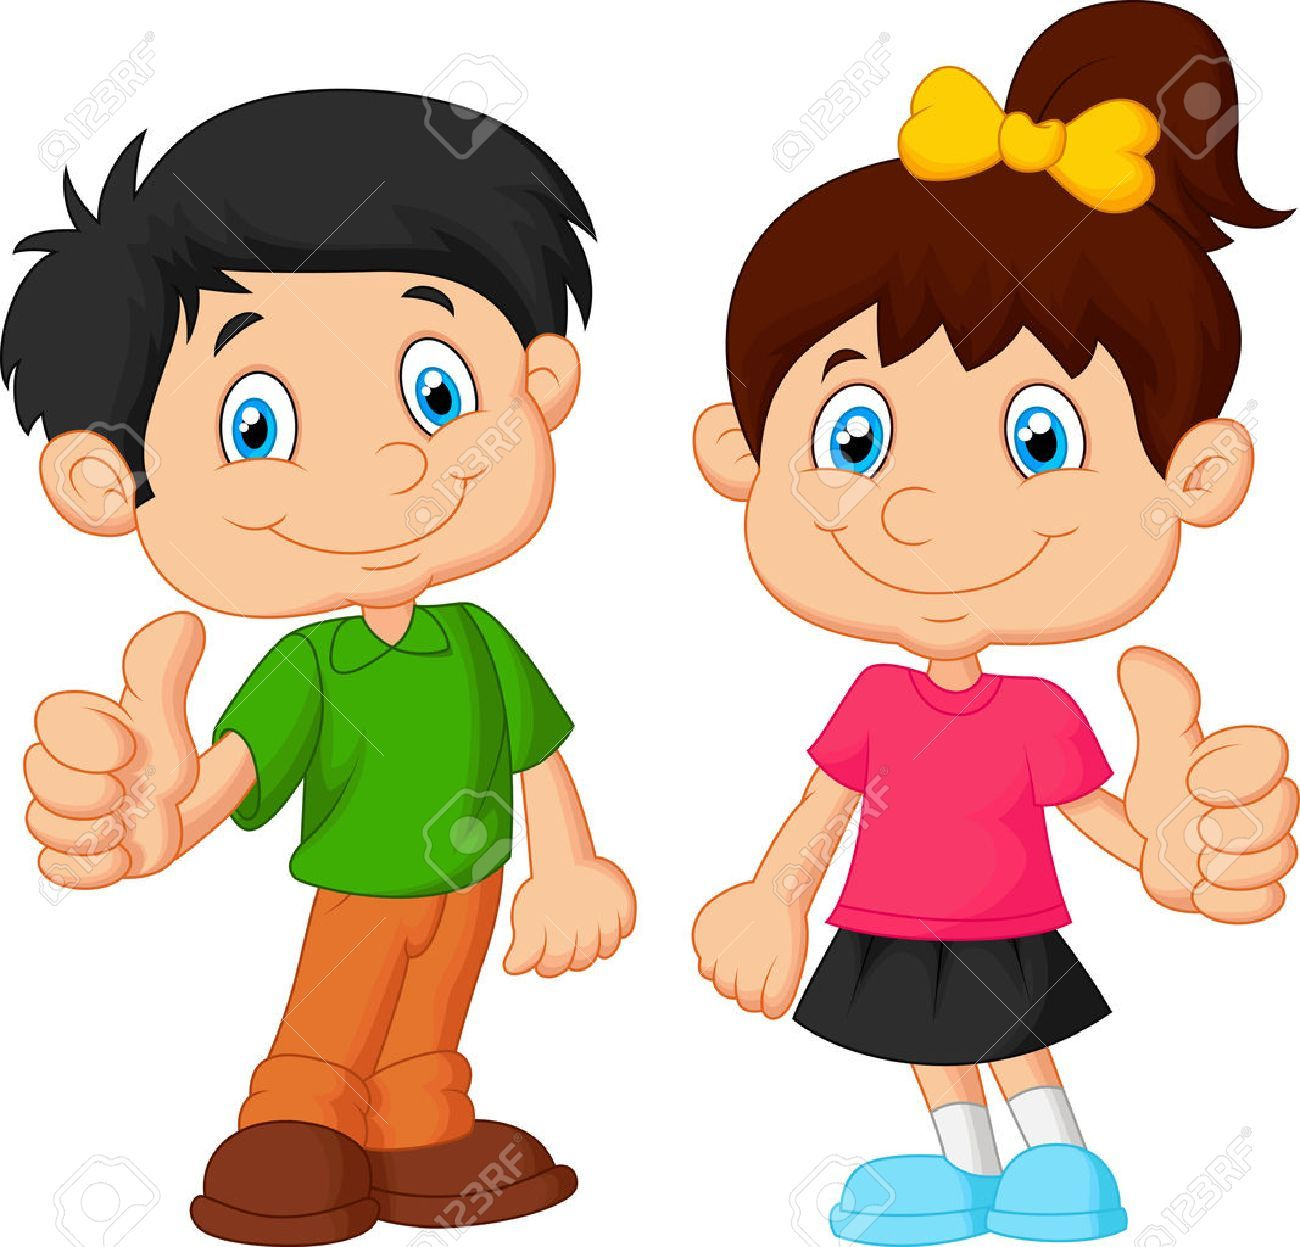 Boy and girl clipart free picture free library Boy and girl clipart free 5 » Clipart Portal picture free library